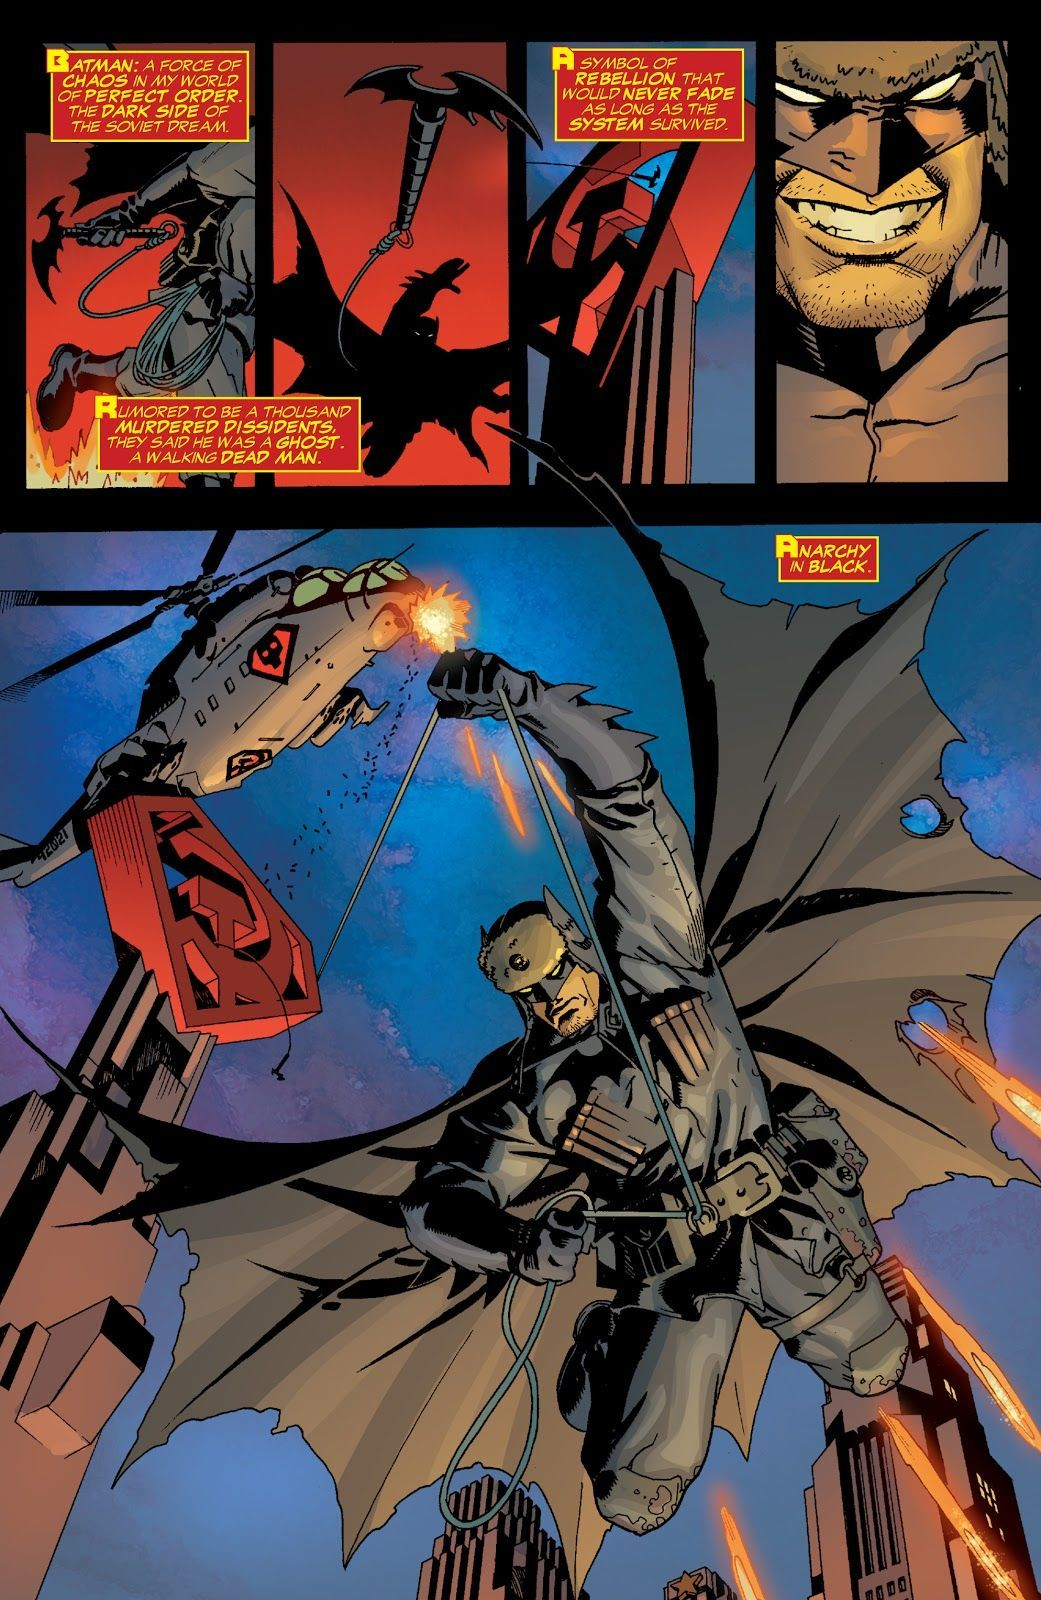 Red Son (Writer: Mark Millar, Artists: Dave Johnson, Kilian Plunkett)